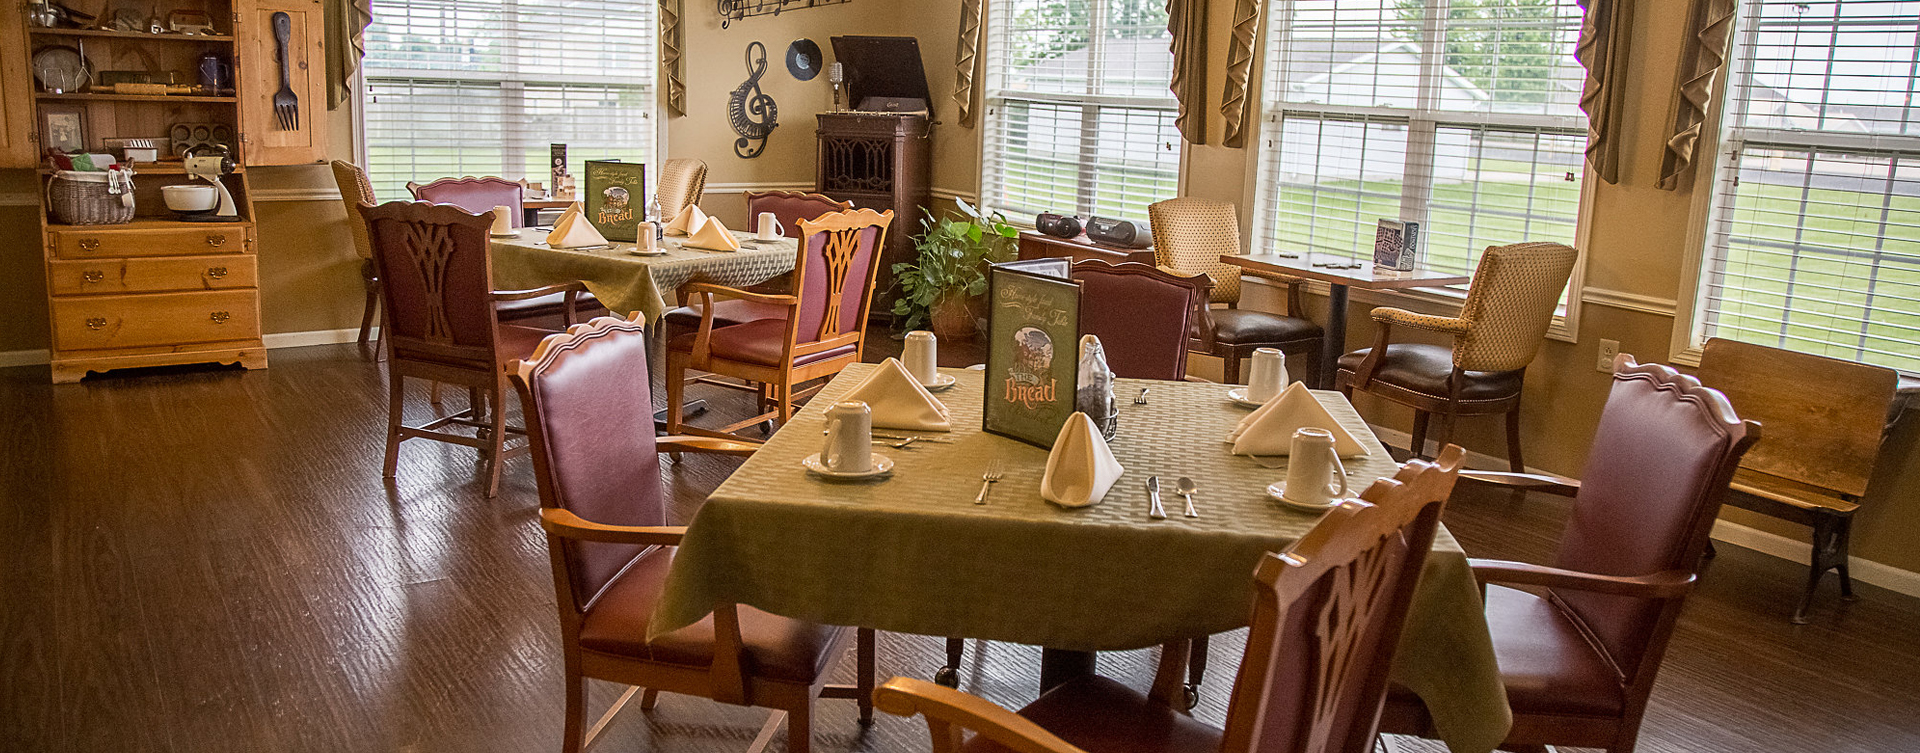 Residents with dementia receive additional assistance with meals in our Mary B's dining room at Bickford of Muscatine